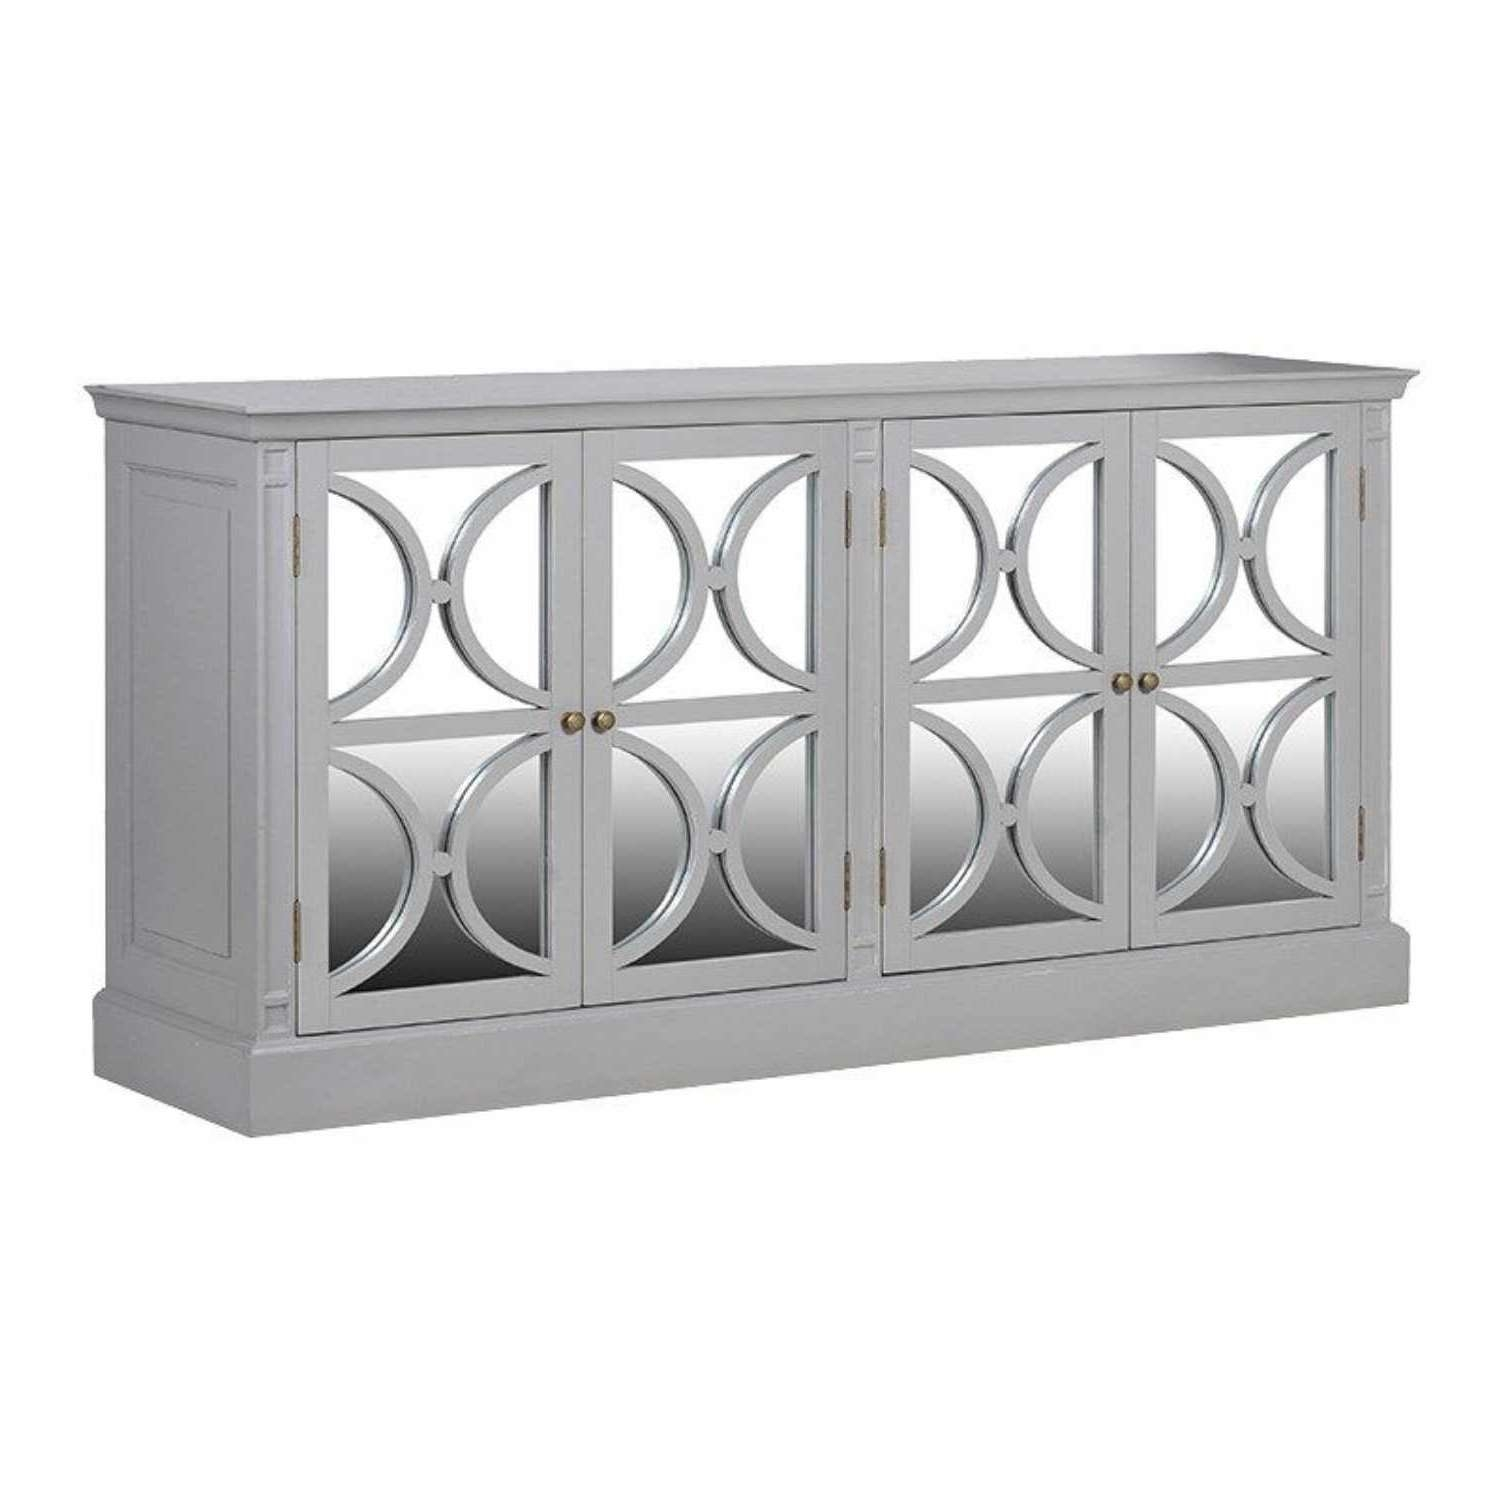 Modern Grey Fayence 4 Door Decorative Mirrored Sideboard With White Mirrored Sideboards (View 11 of 20)